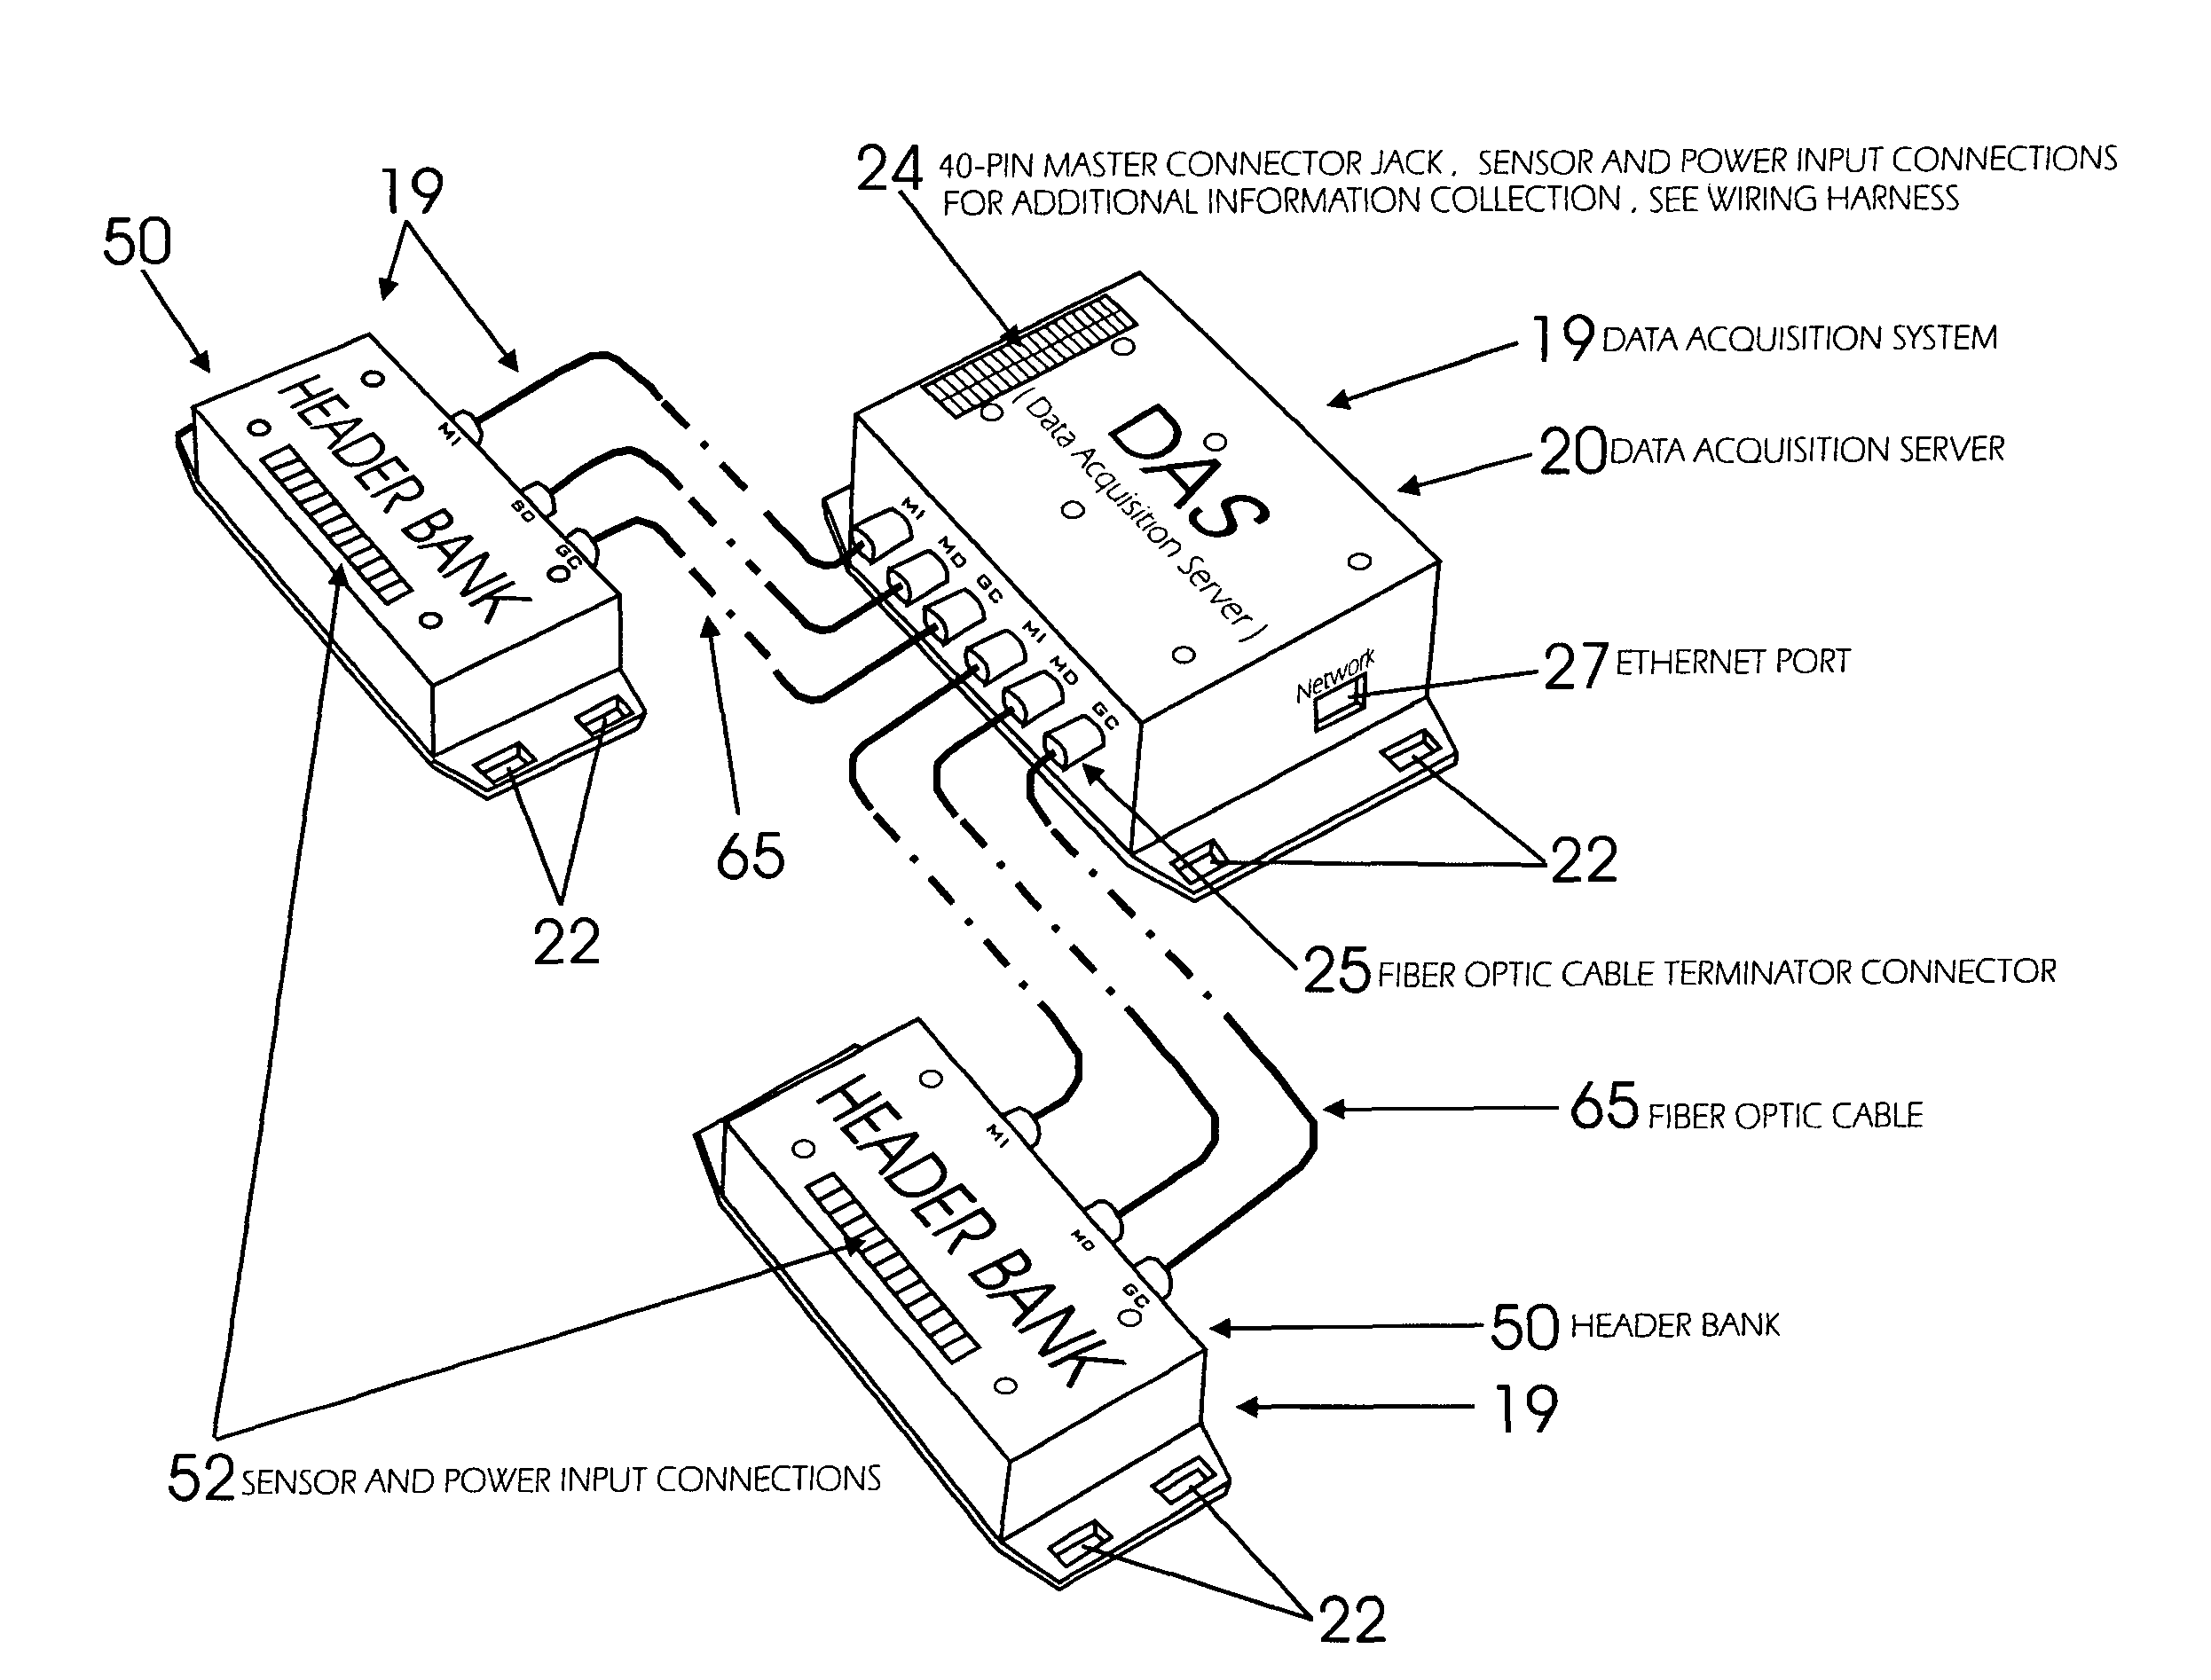 Patent Us7991535 Portable Palm Sized Data Acquisition System For Drawing Wiring Harness Connection